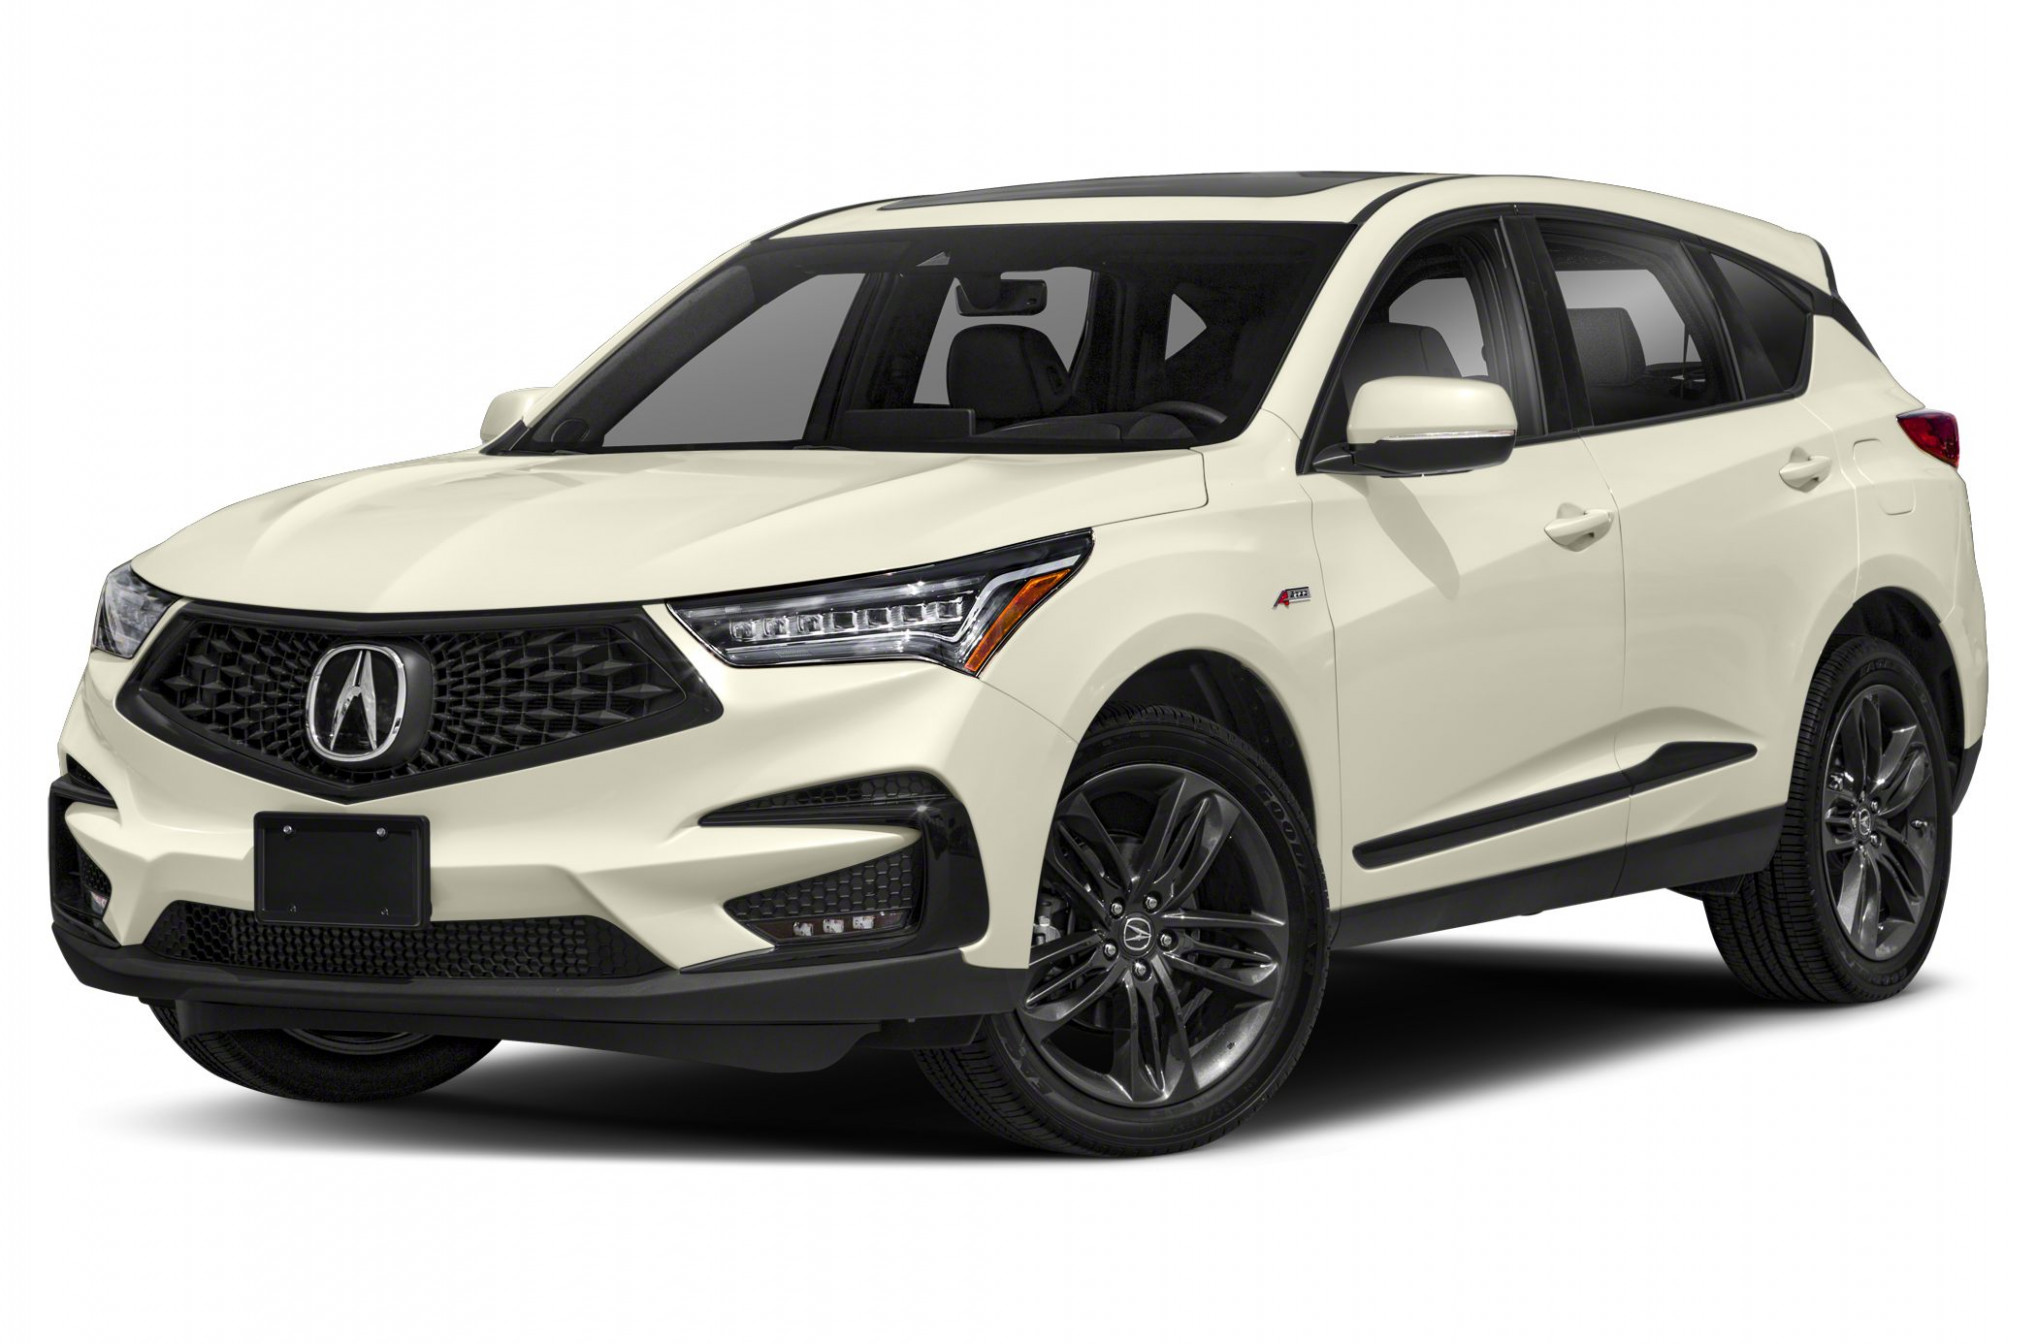 10 Acura RDX A-Spec Package 10dr Front-wheel Drive Pictures - 2020 acura rdx interior